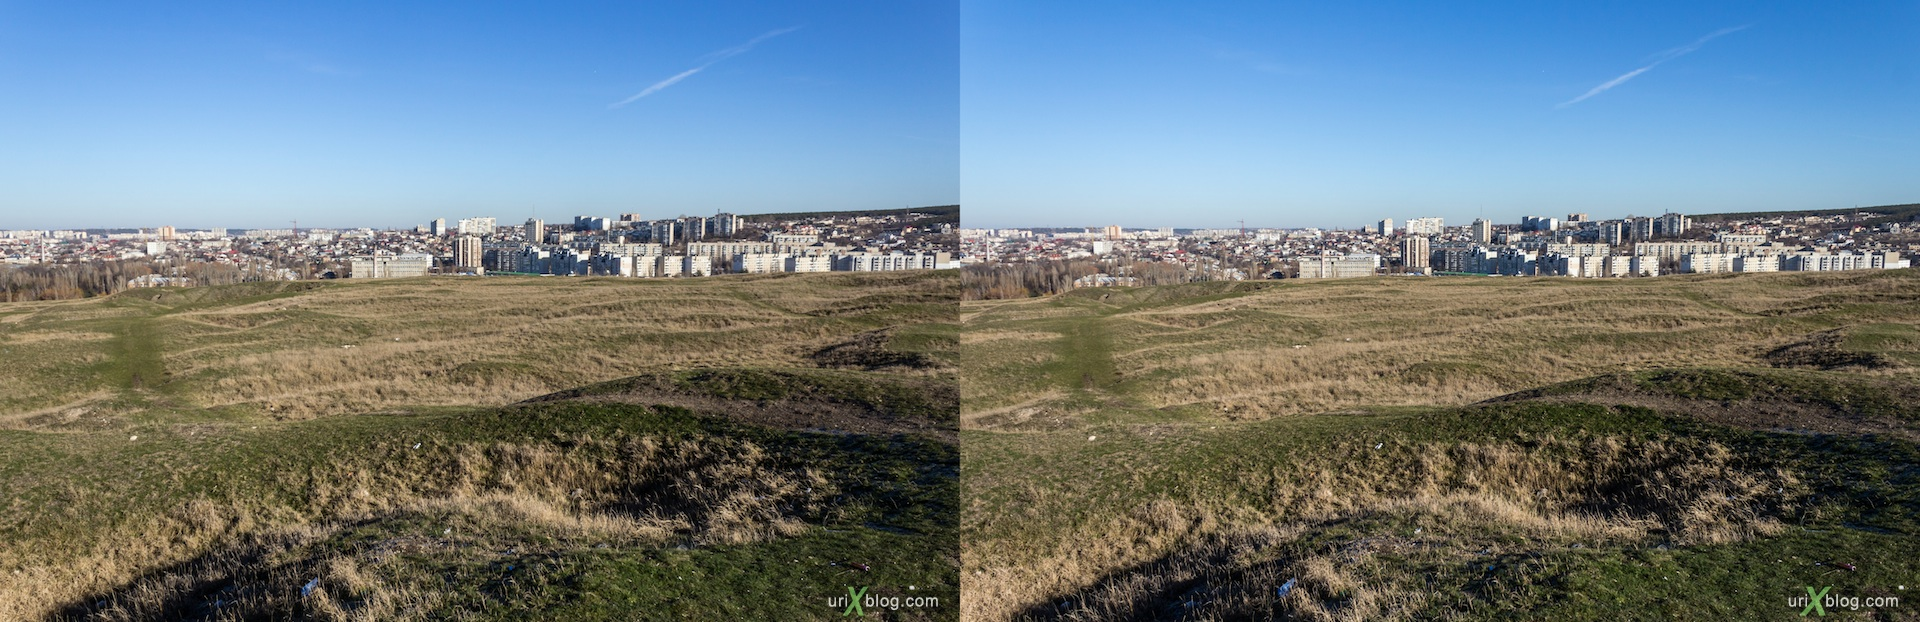 2013, Scythian Neapolis, excavations, field, Petrovsky rocks, Simferopol, Crimea, Ukraine, 3D, stereo pair, cross-eyed, crossview, cross view stereo pair